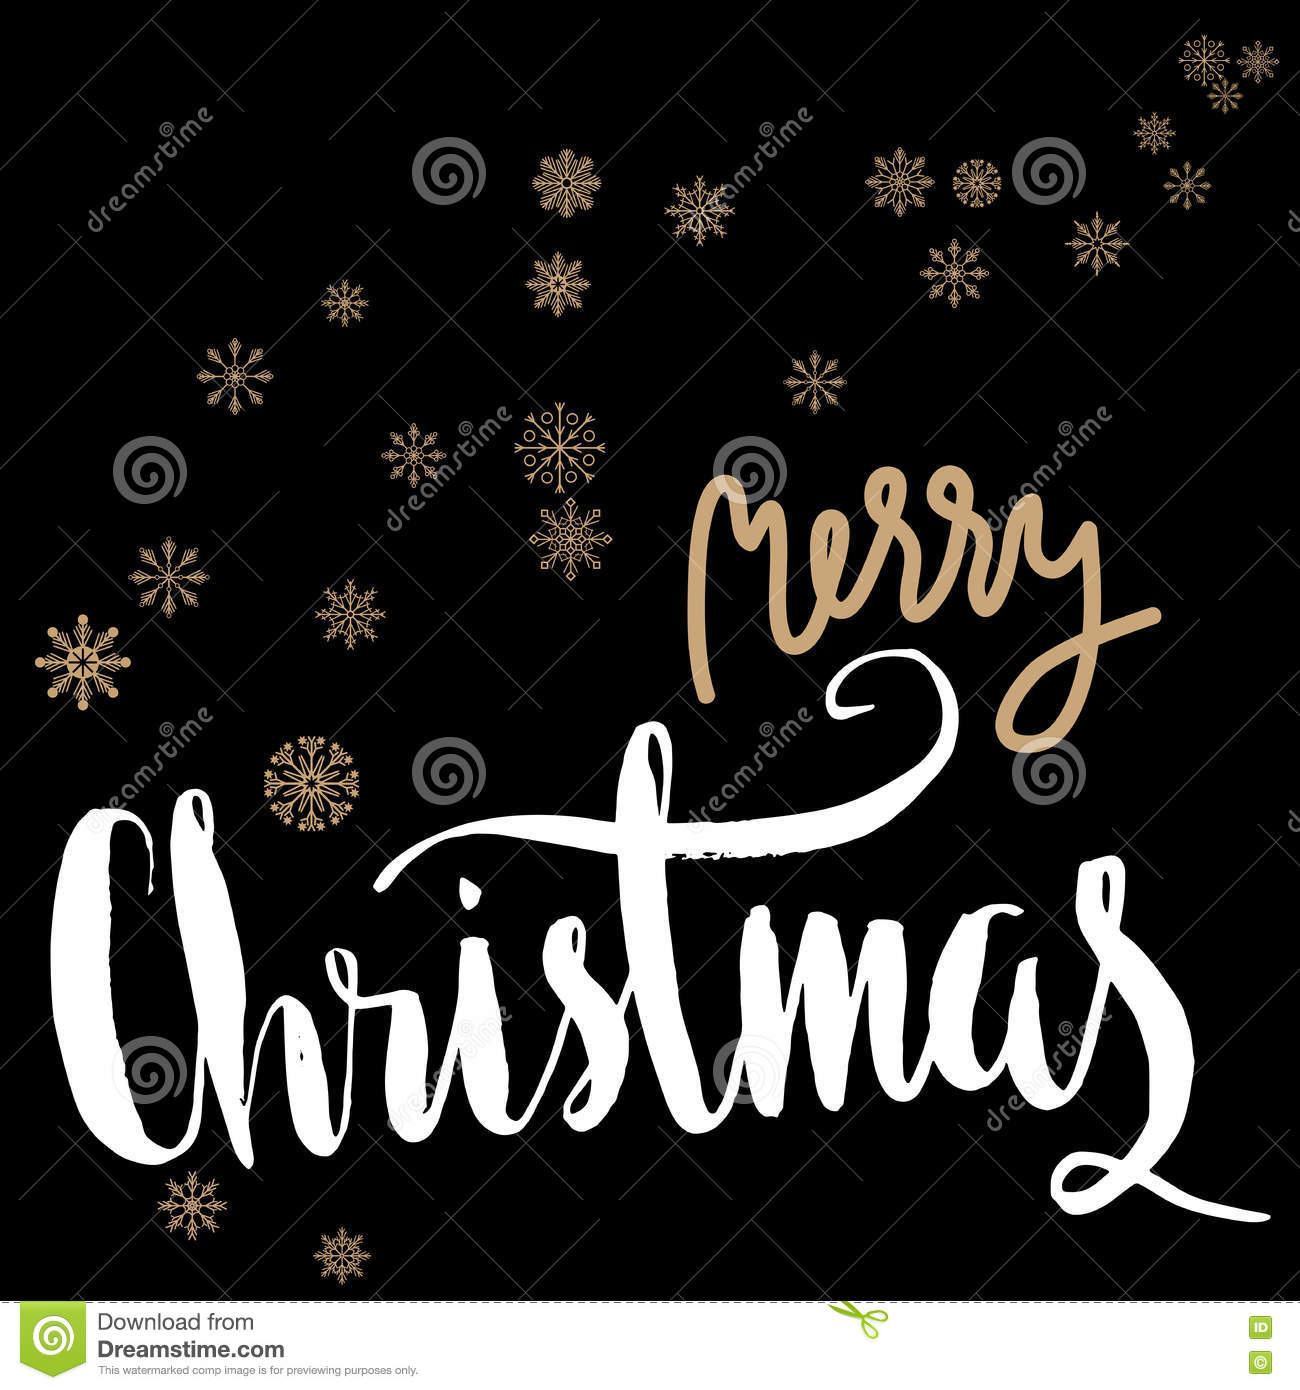 Merry Christmas Gold And White Lettering Design On Black Background